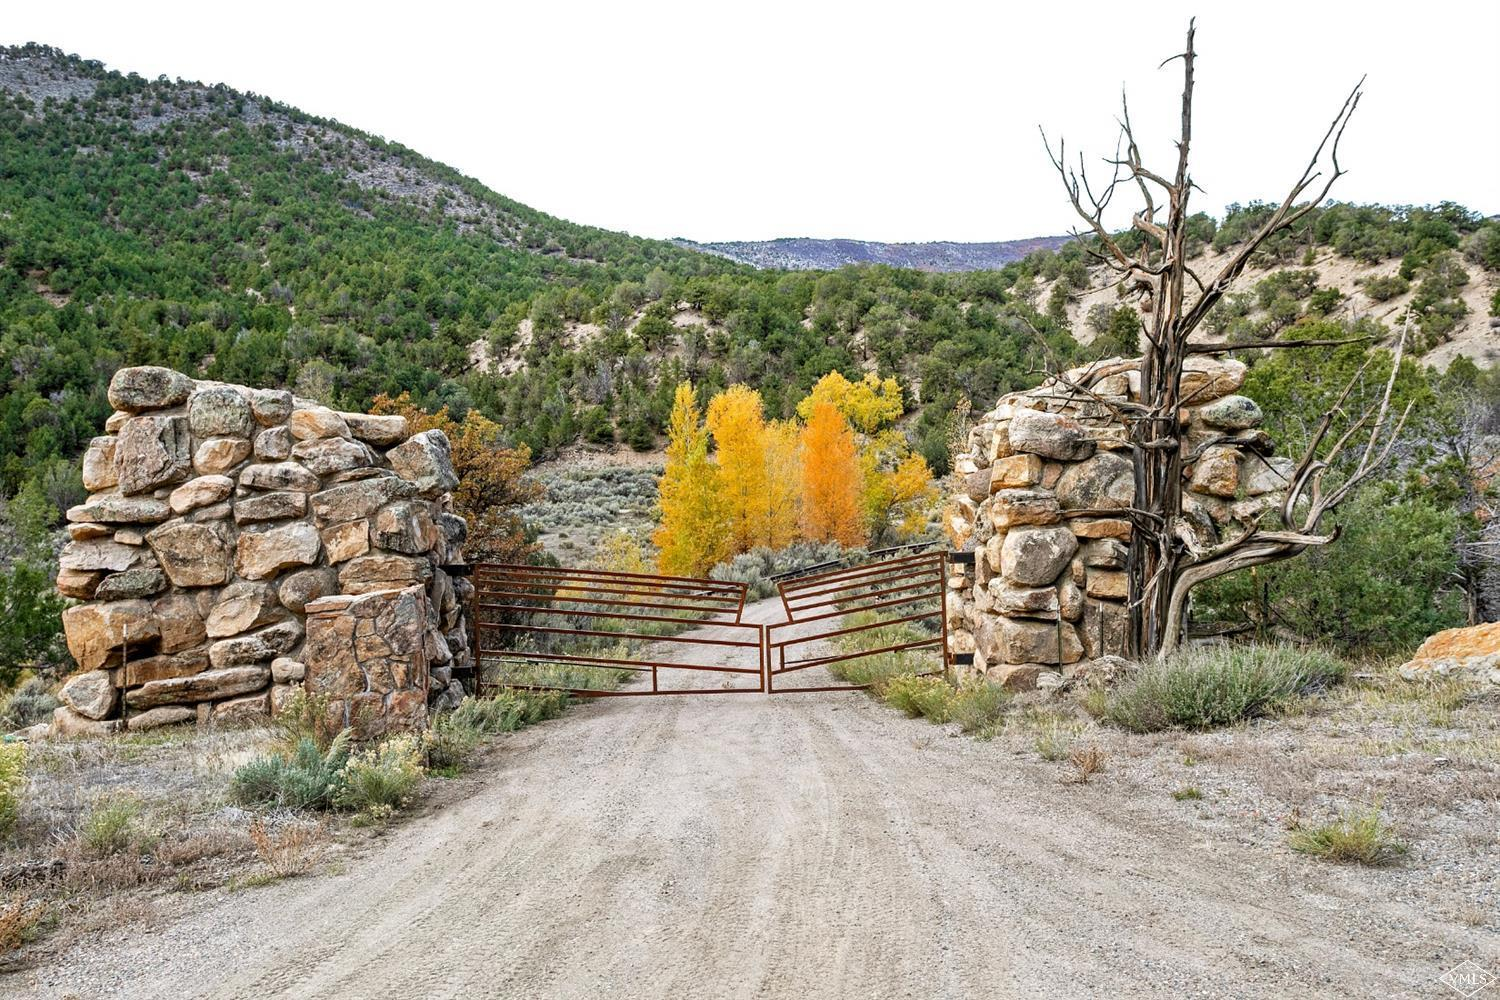 2742 Sweetwater Road, 5, Gypsum, CO 81637 Property Photo - Gypsum, CO real estate listing